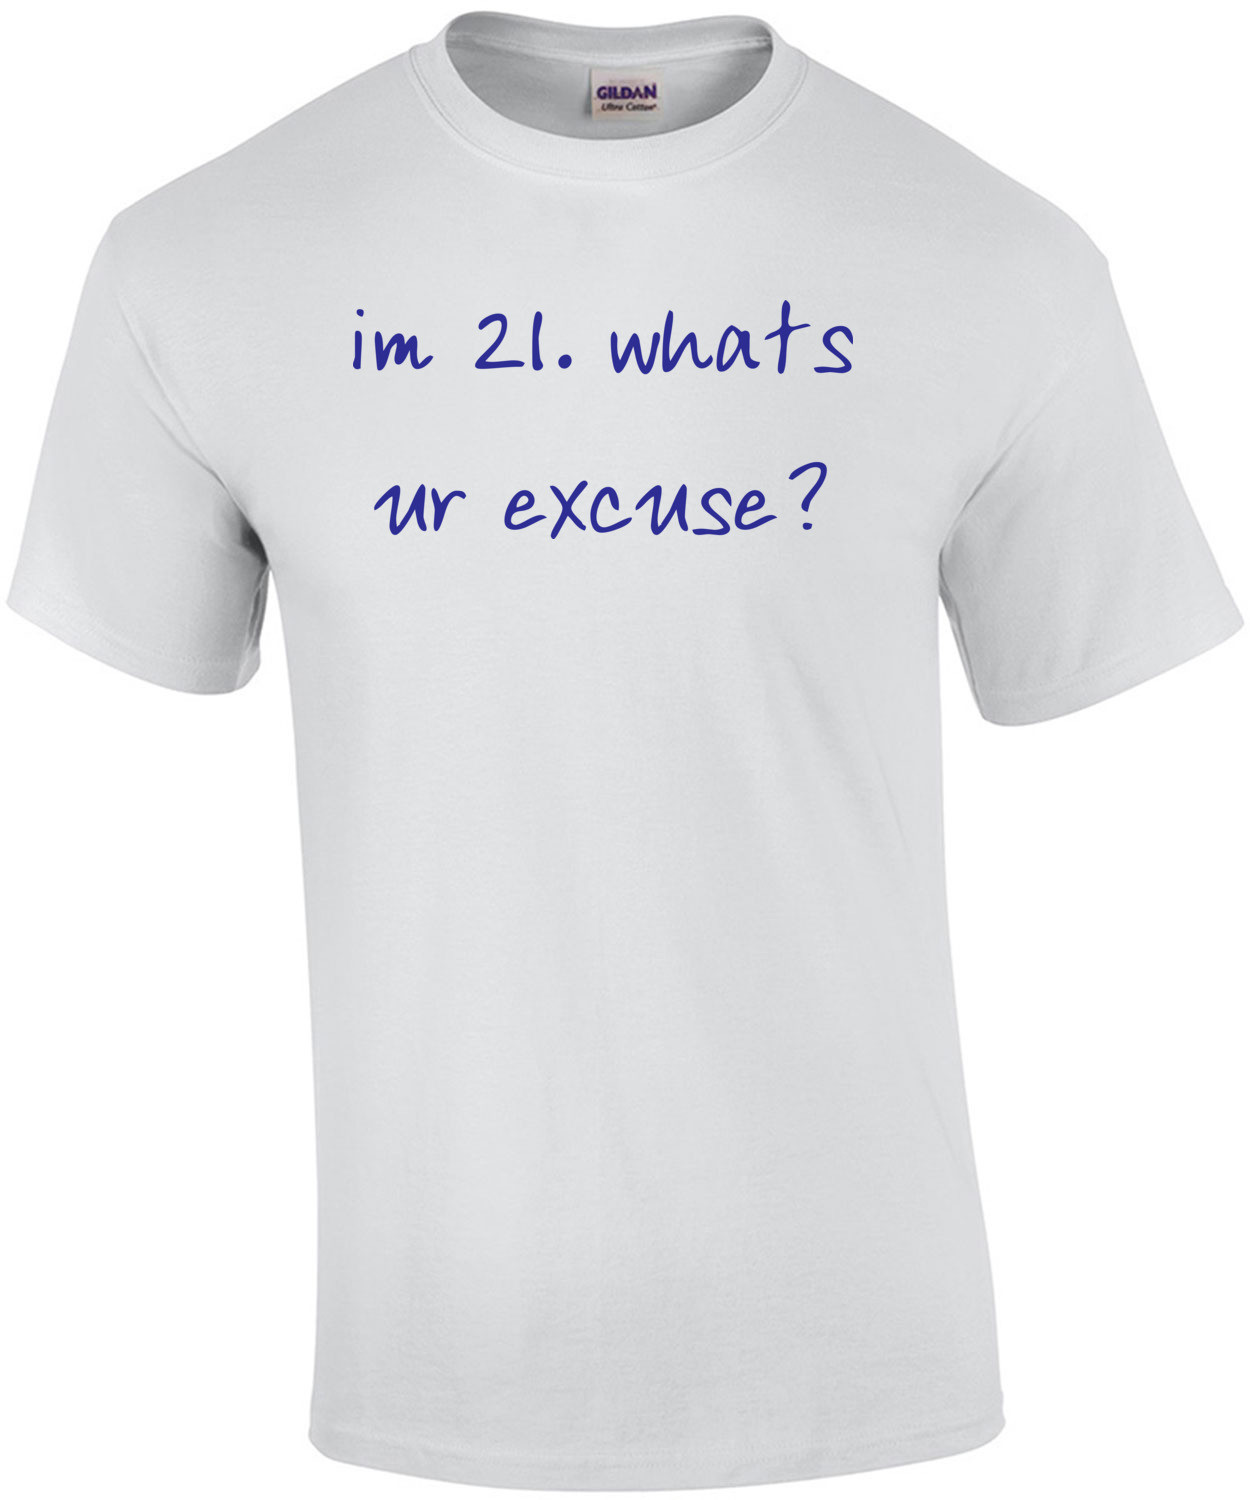 im 21. whats ur excuse? 21 birthday t-shirt Shirt